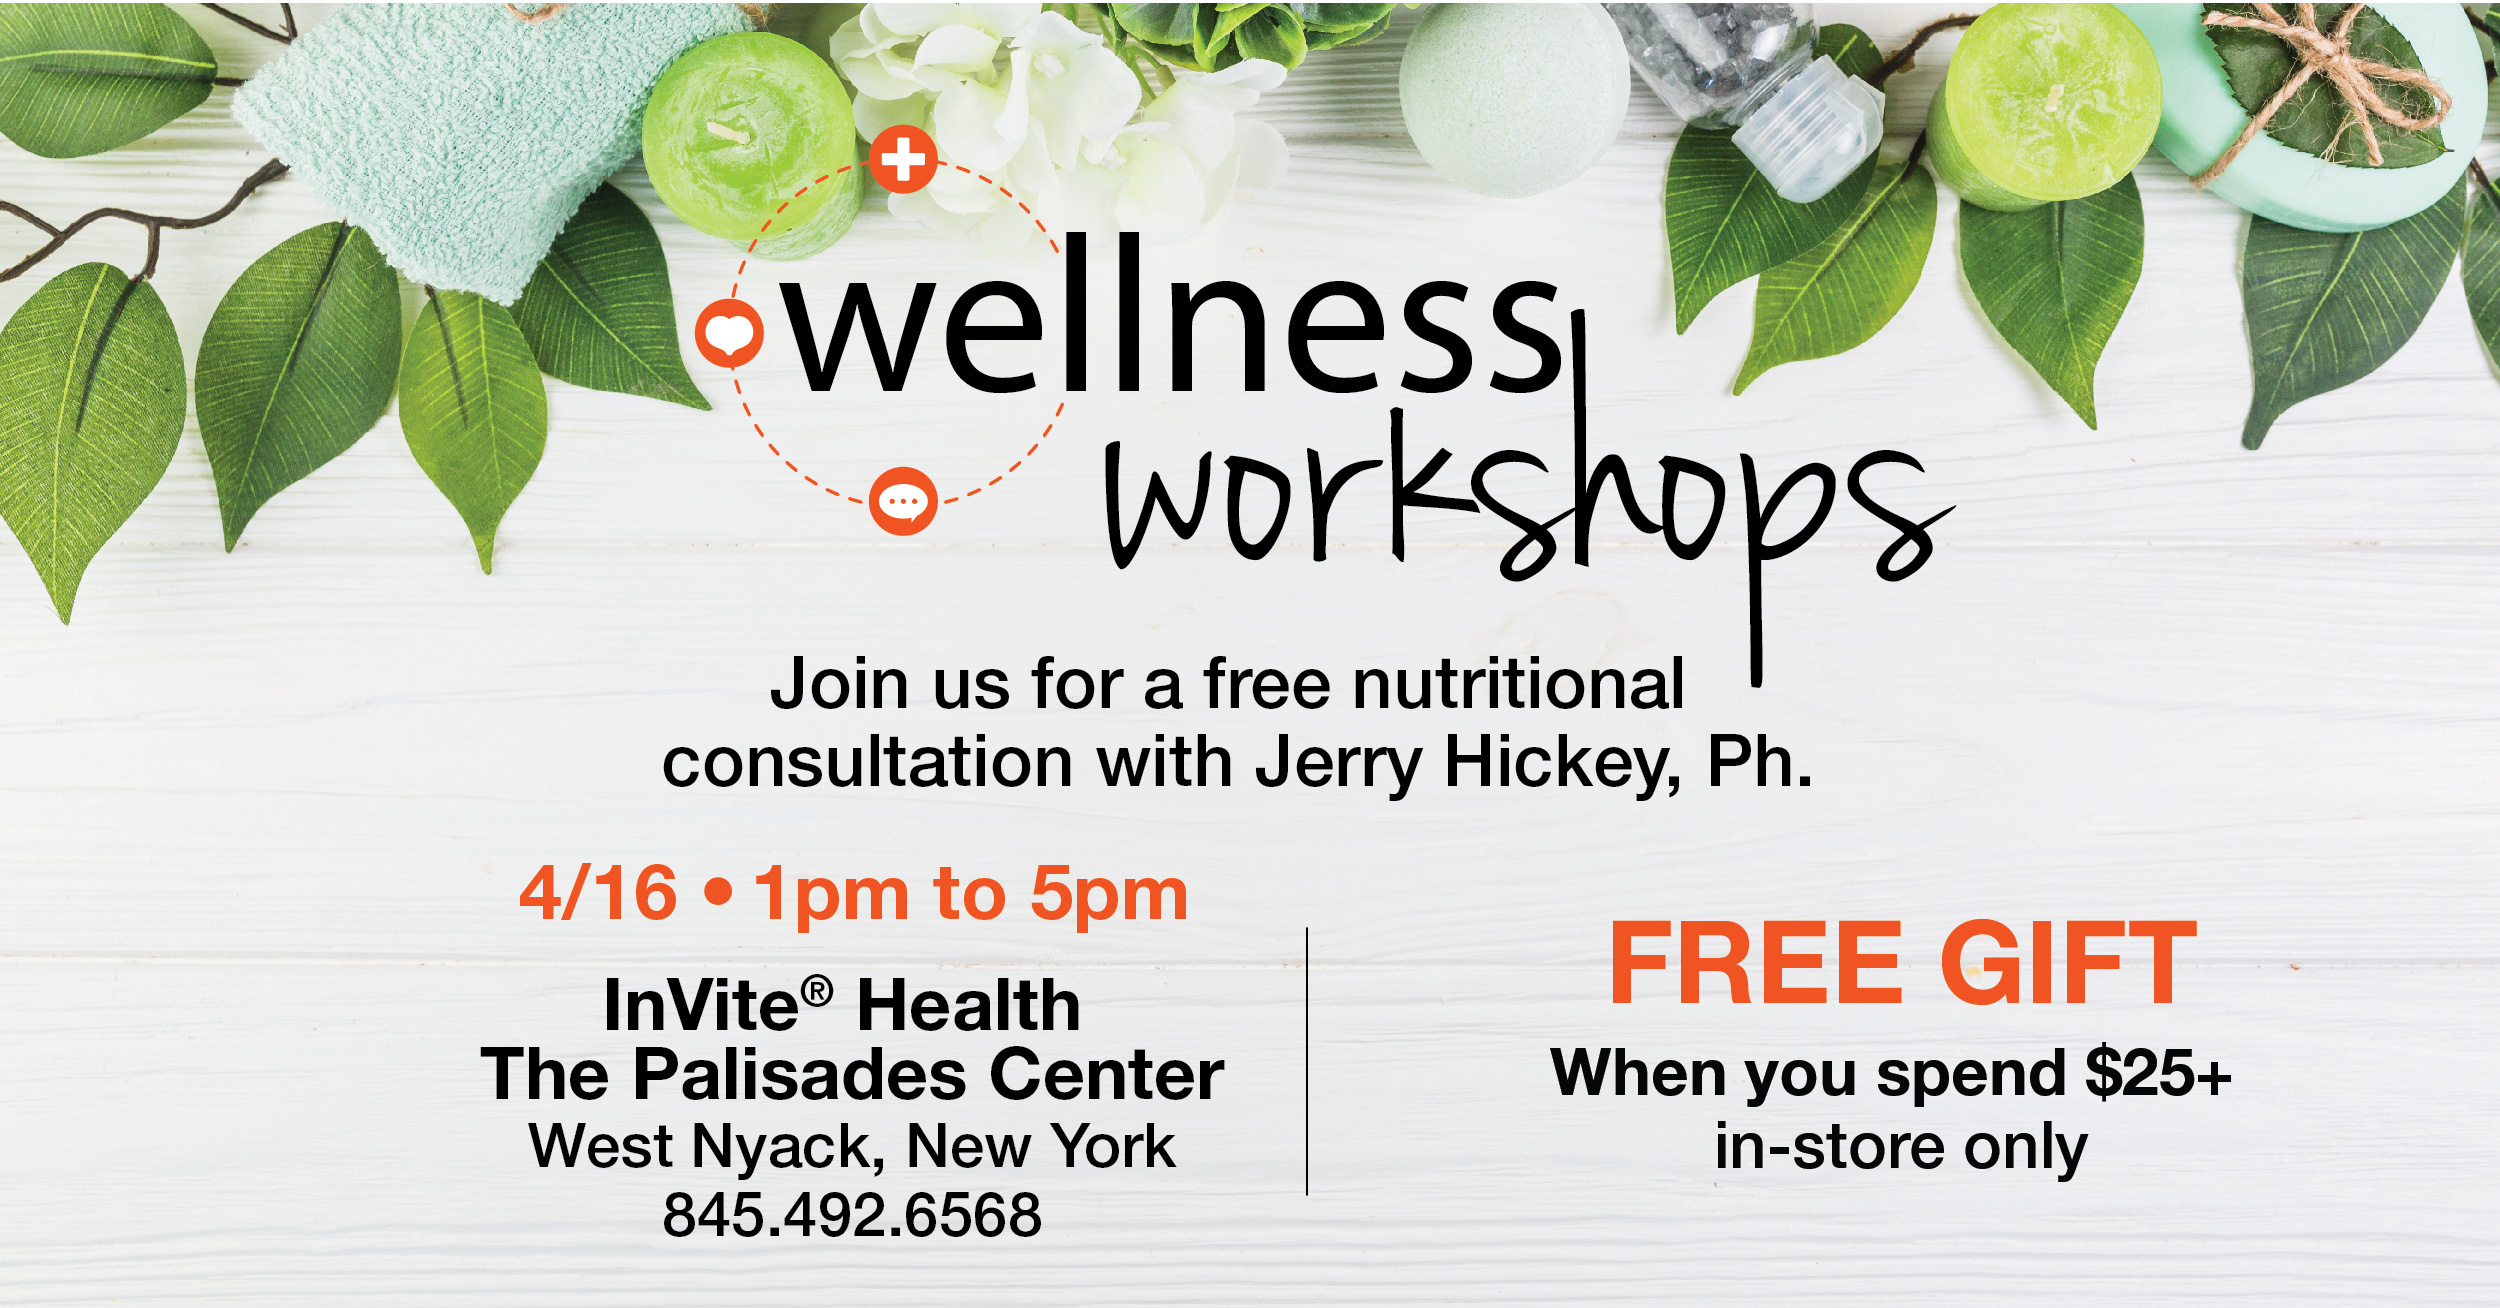 Free Nutritional Consultation with Jerry Hickey at the Palisades Center